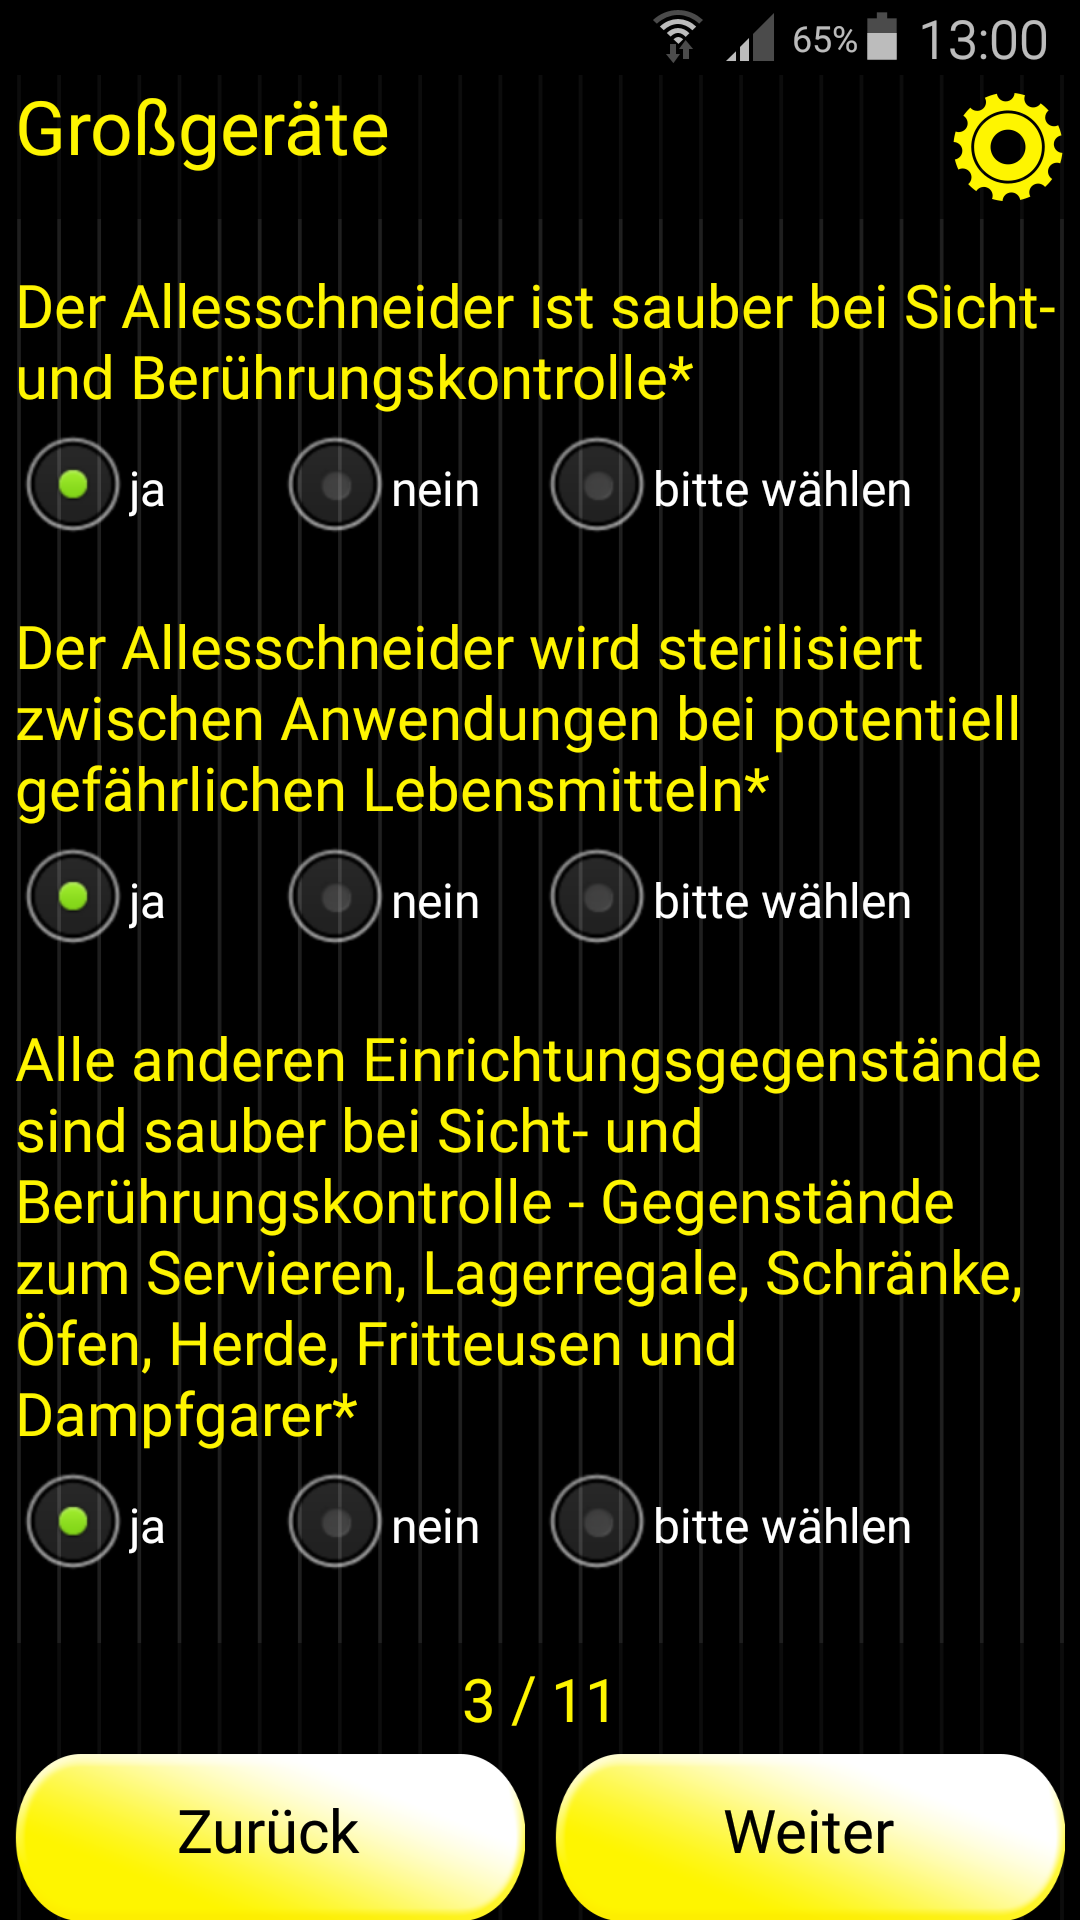 ginstr_app_foodServiceInspection_DE_4